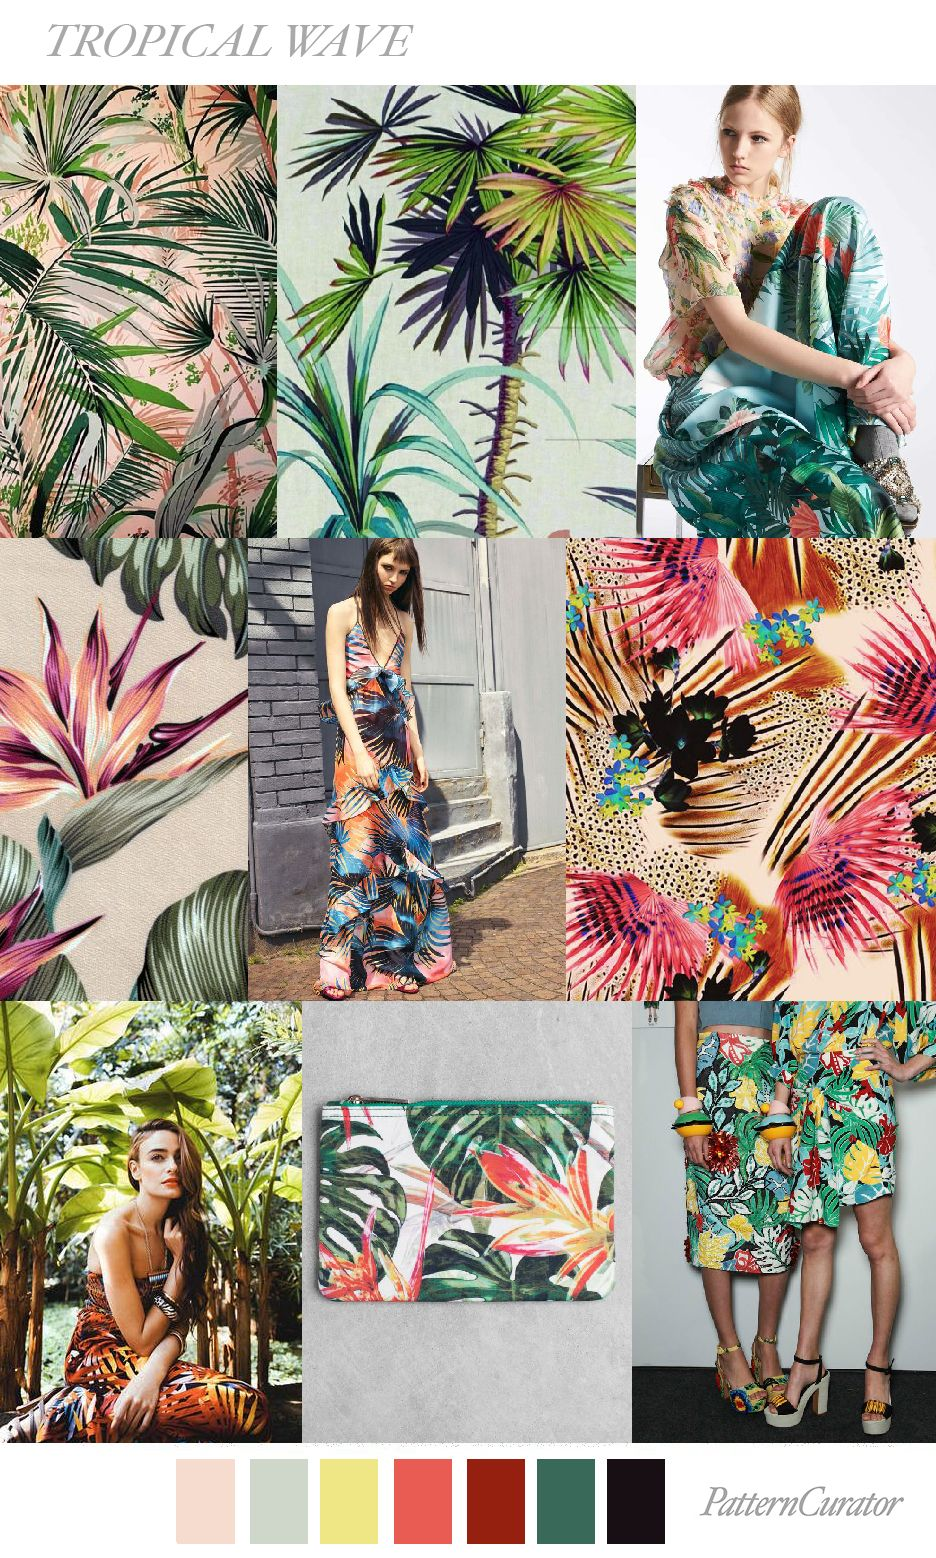 Tropical Wave By Patterncurator Tropical Fashion Fashion Trend Inspiration Tropical Trend